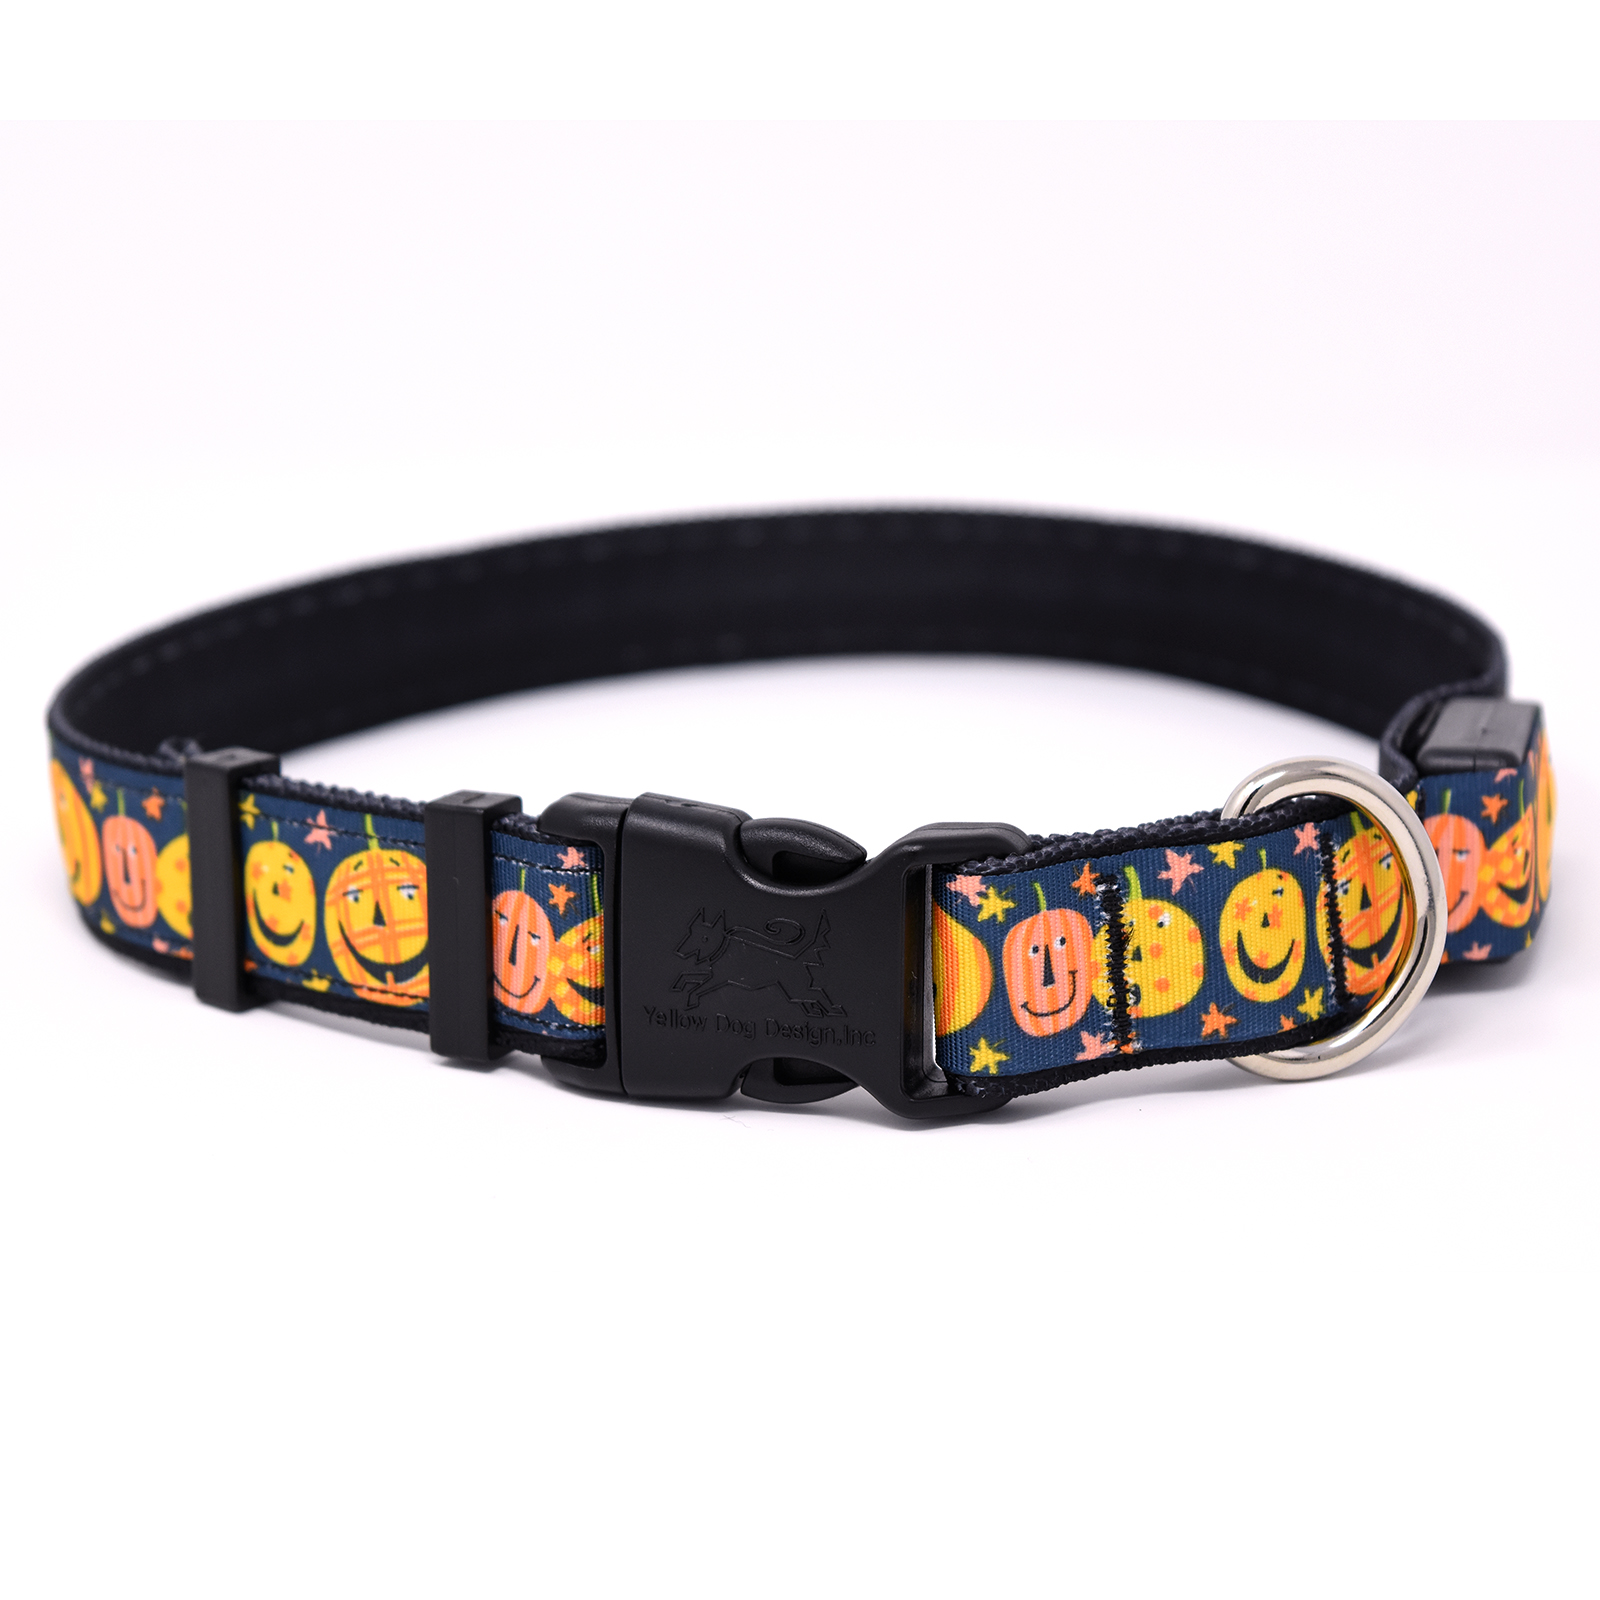 Pumpkin Party ORION LED Dog Collar